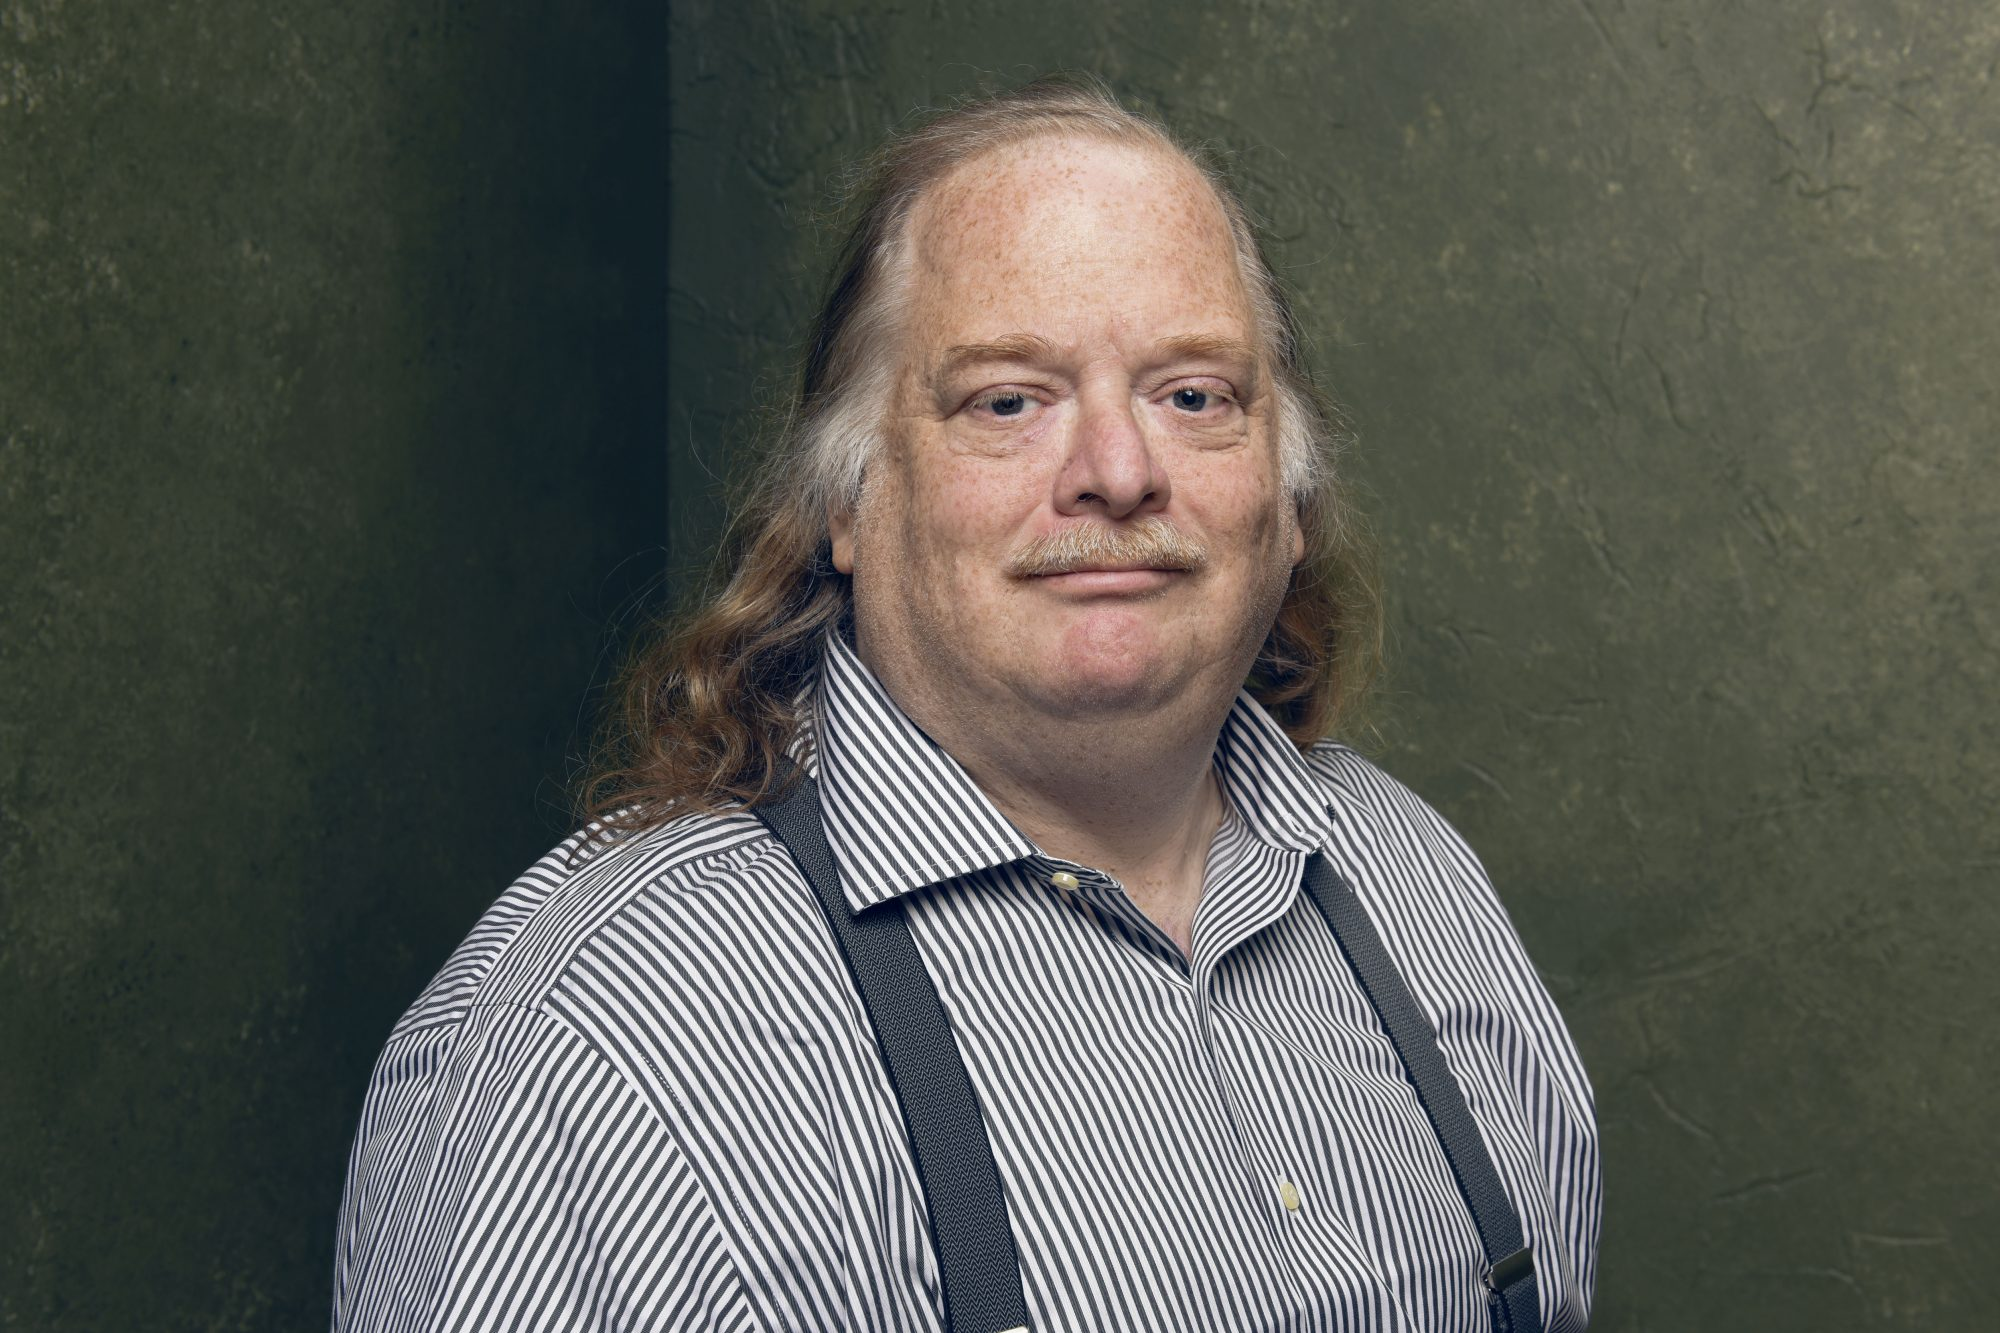 L.A.'s Tribute to Jonathan Gold Showed Just How Much He Meant to the City